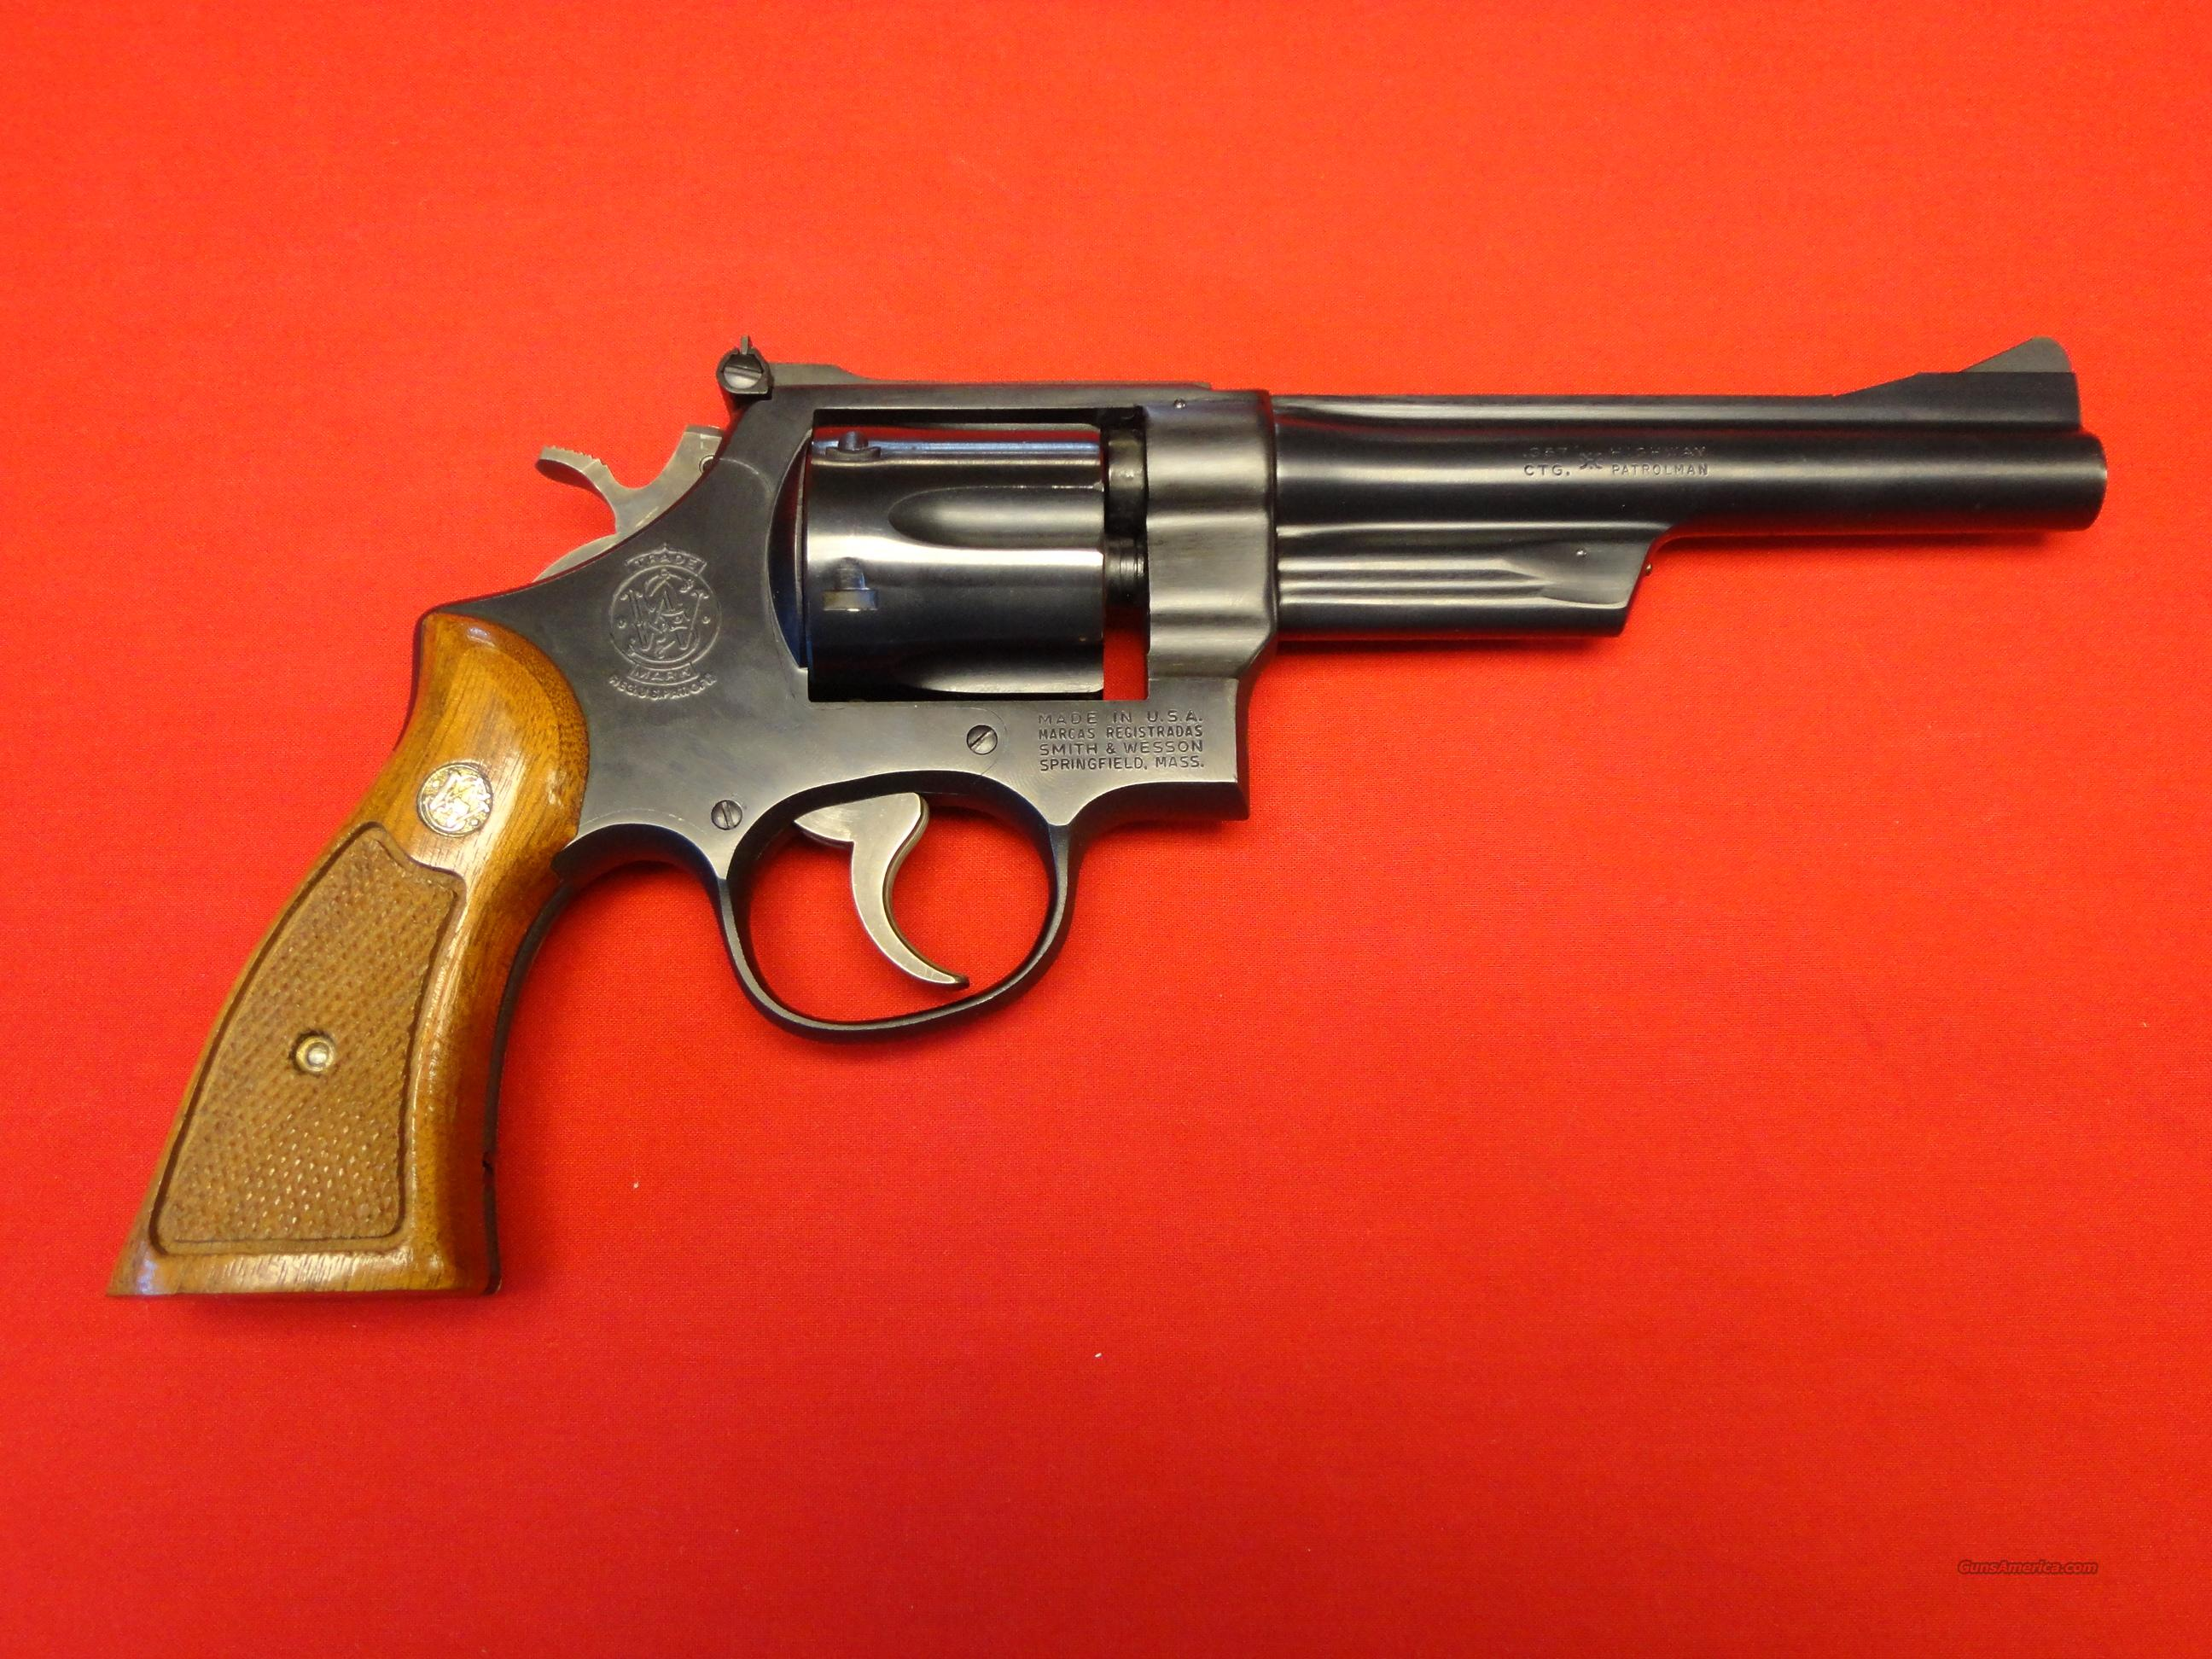 S&W MODEL 28-2  -  357 MAG  Guns > Pistols > Smith & Wesson Revolvers > Full Frame Revolver